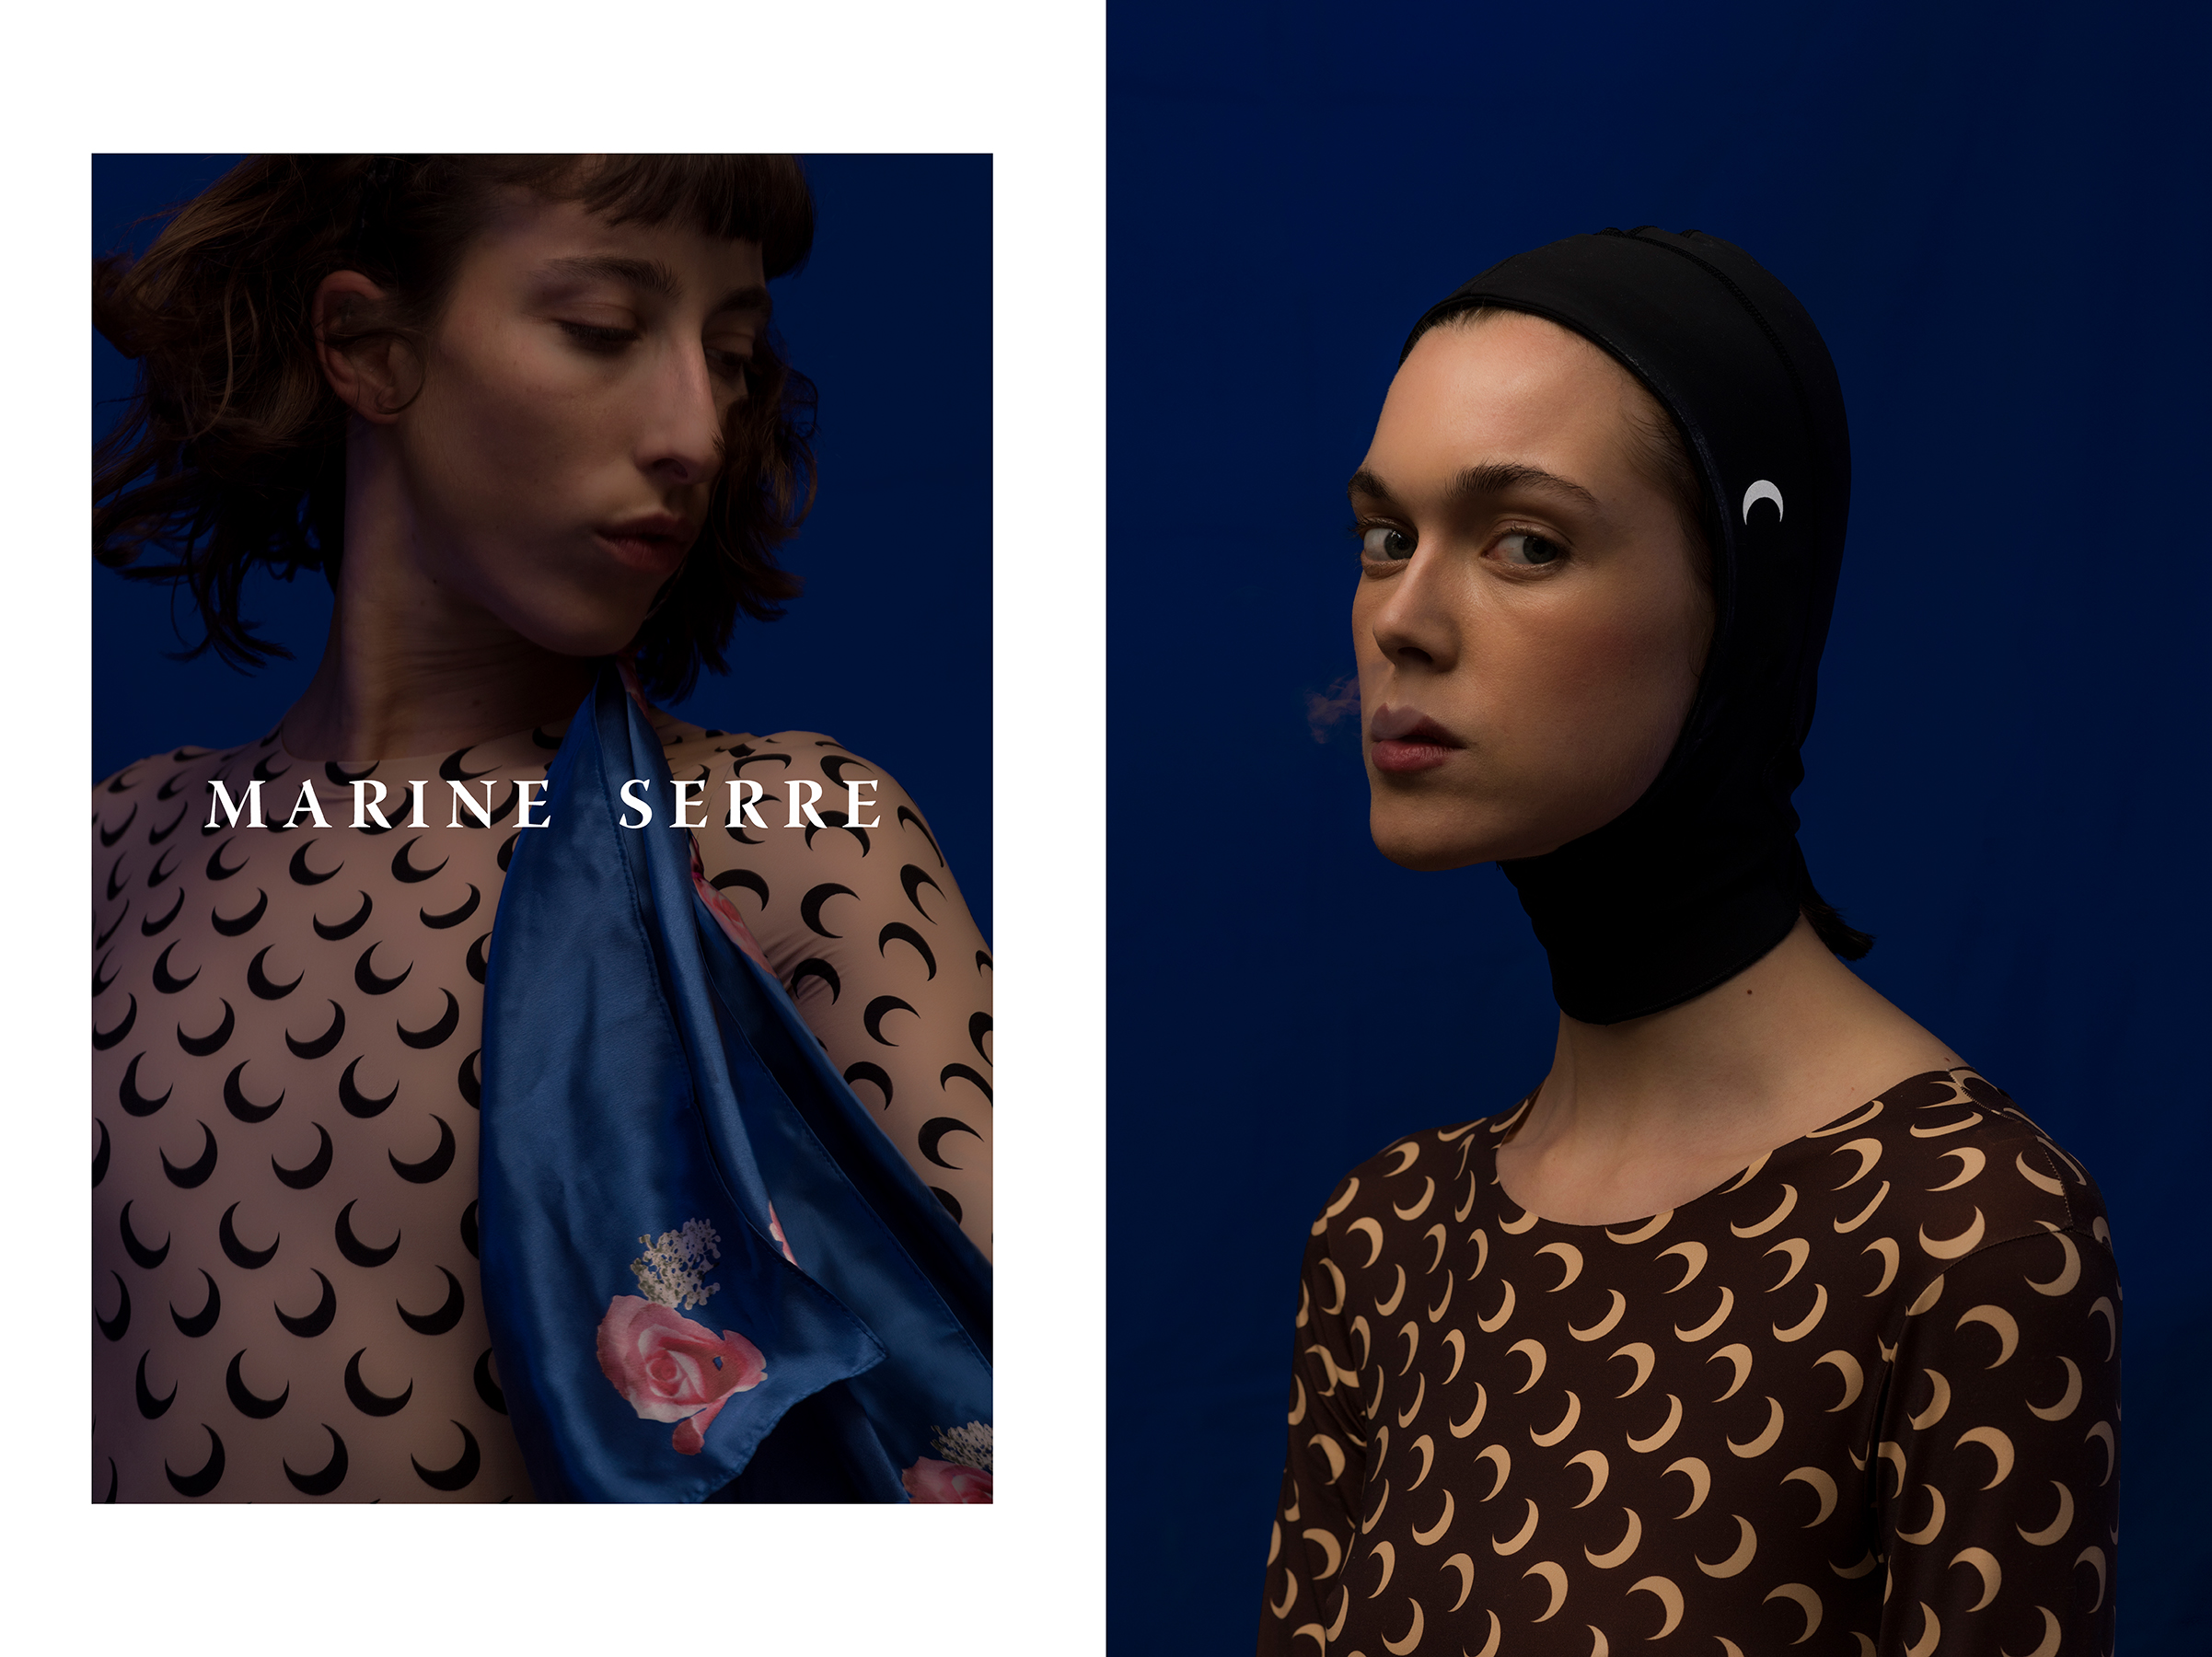 Marine Serre Fall 2018 Ad Campaign by Tanguy Poujol